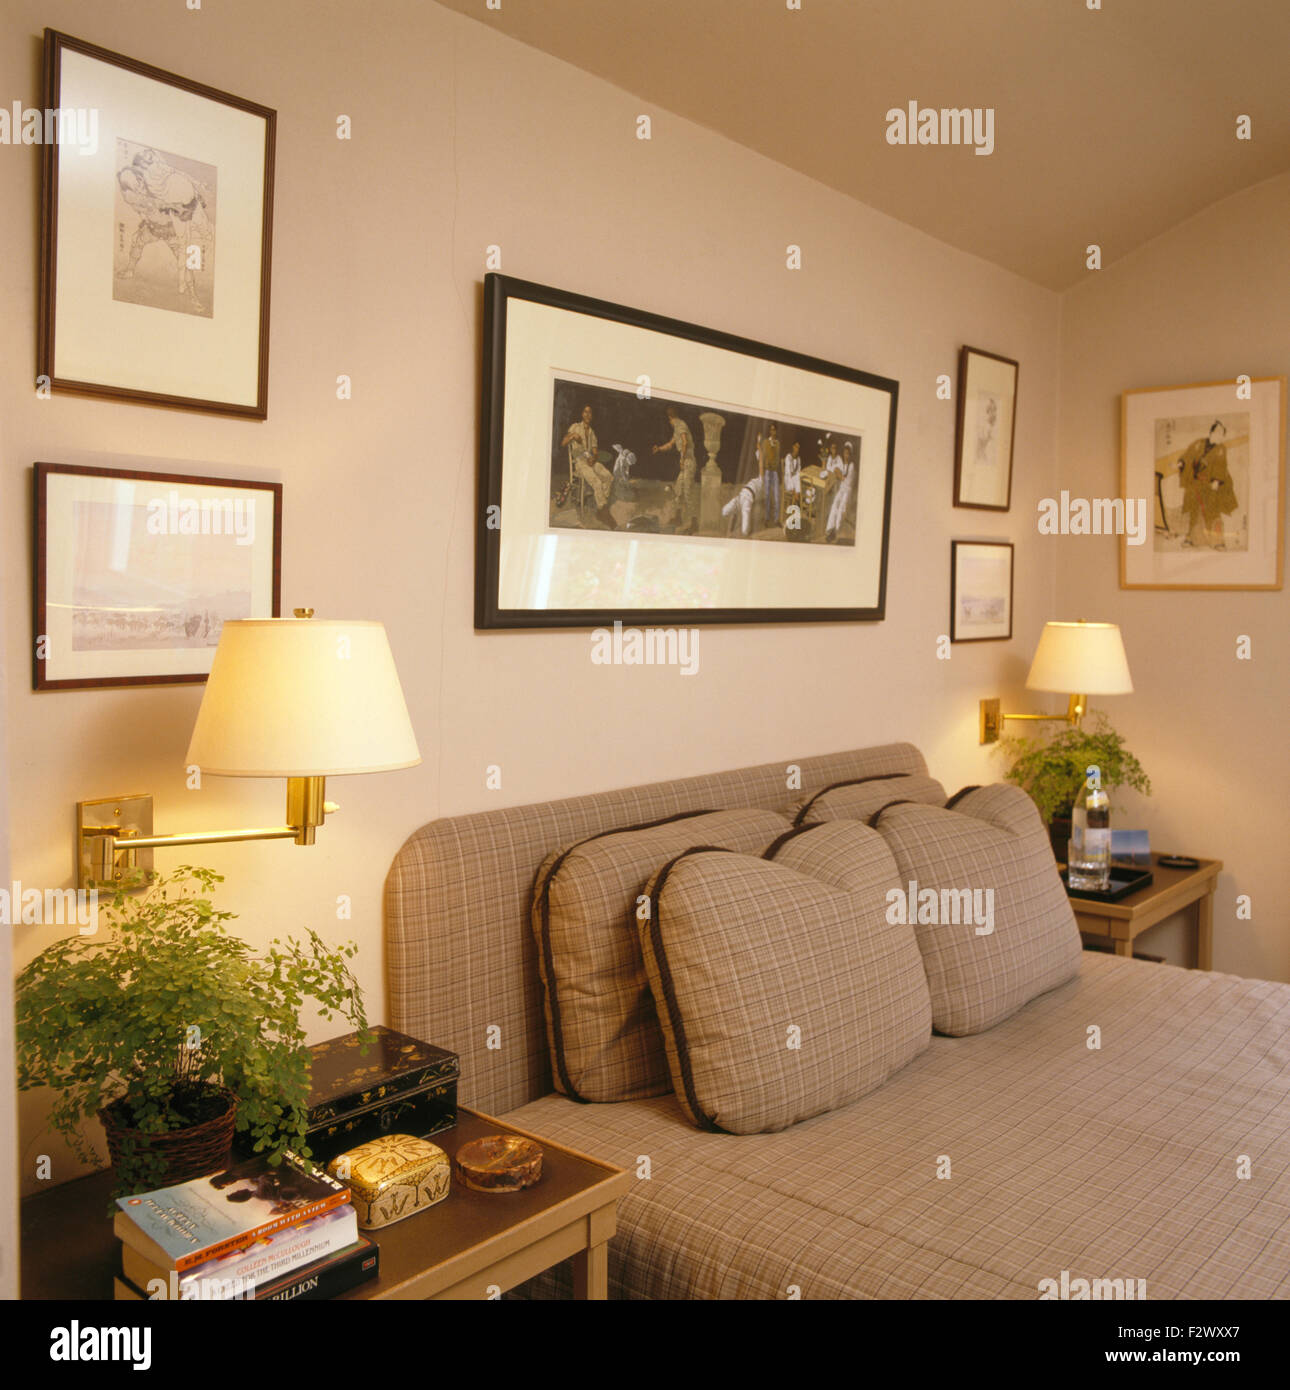 Lighted wall lamps on either side of bed with fitted cover and cushions in  nineties bedroom. Lighted wall lamps on either side of bed with fitted cover and